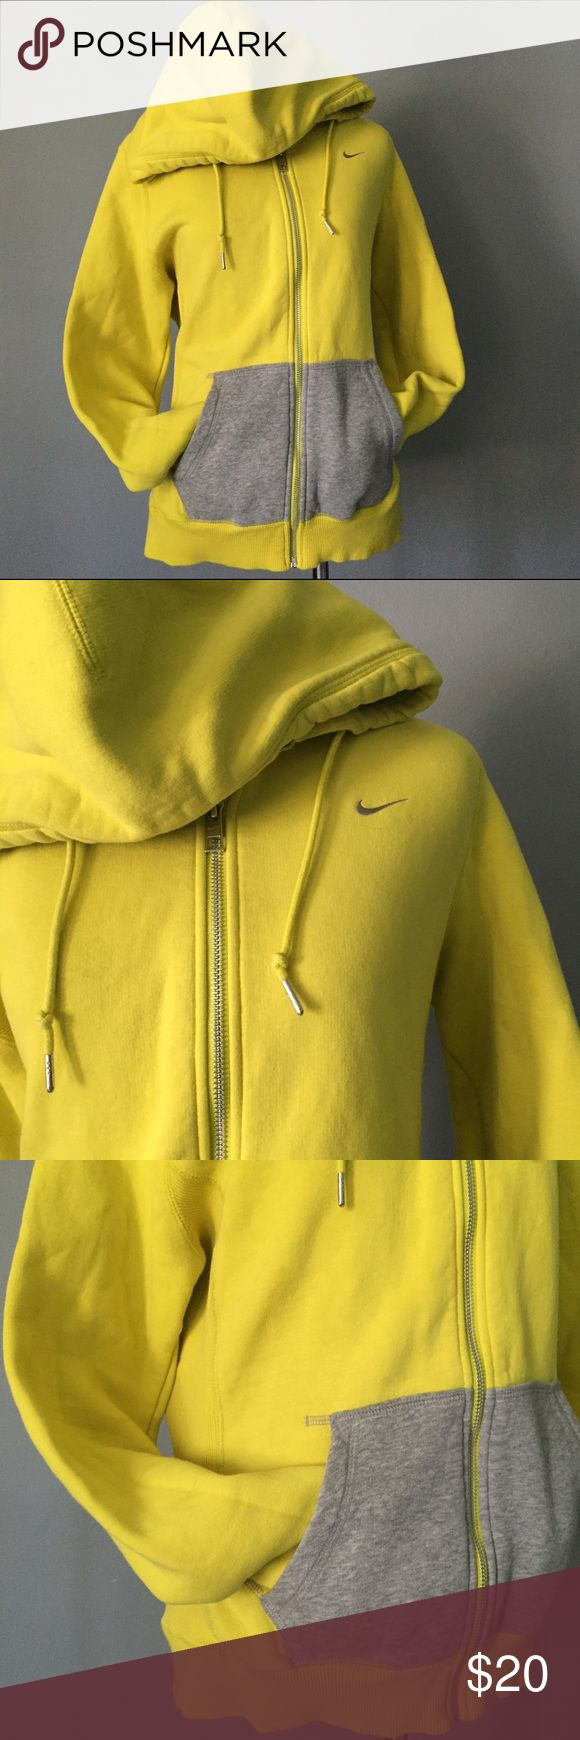 Yellow Nike Zip Hoodie This listing is for a large yellow Nike zip hoodie. It's great for running in the morning or any activity you want to complete throughout the day. Size is a large. Nike Tops Sweatshirts & Hoodies